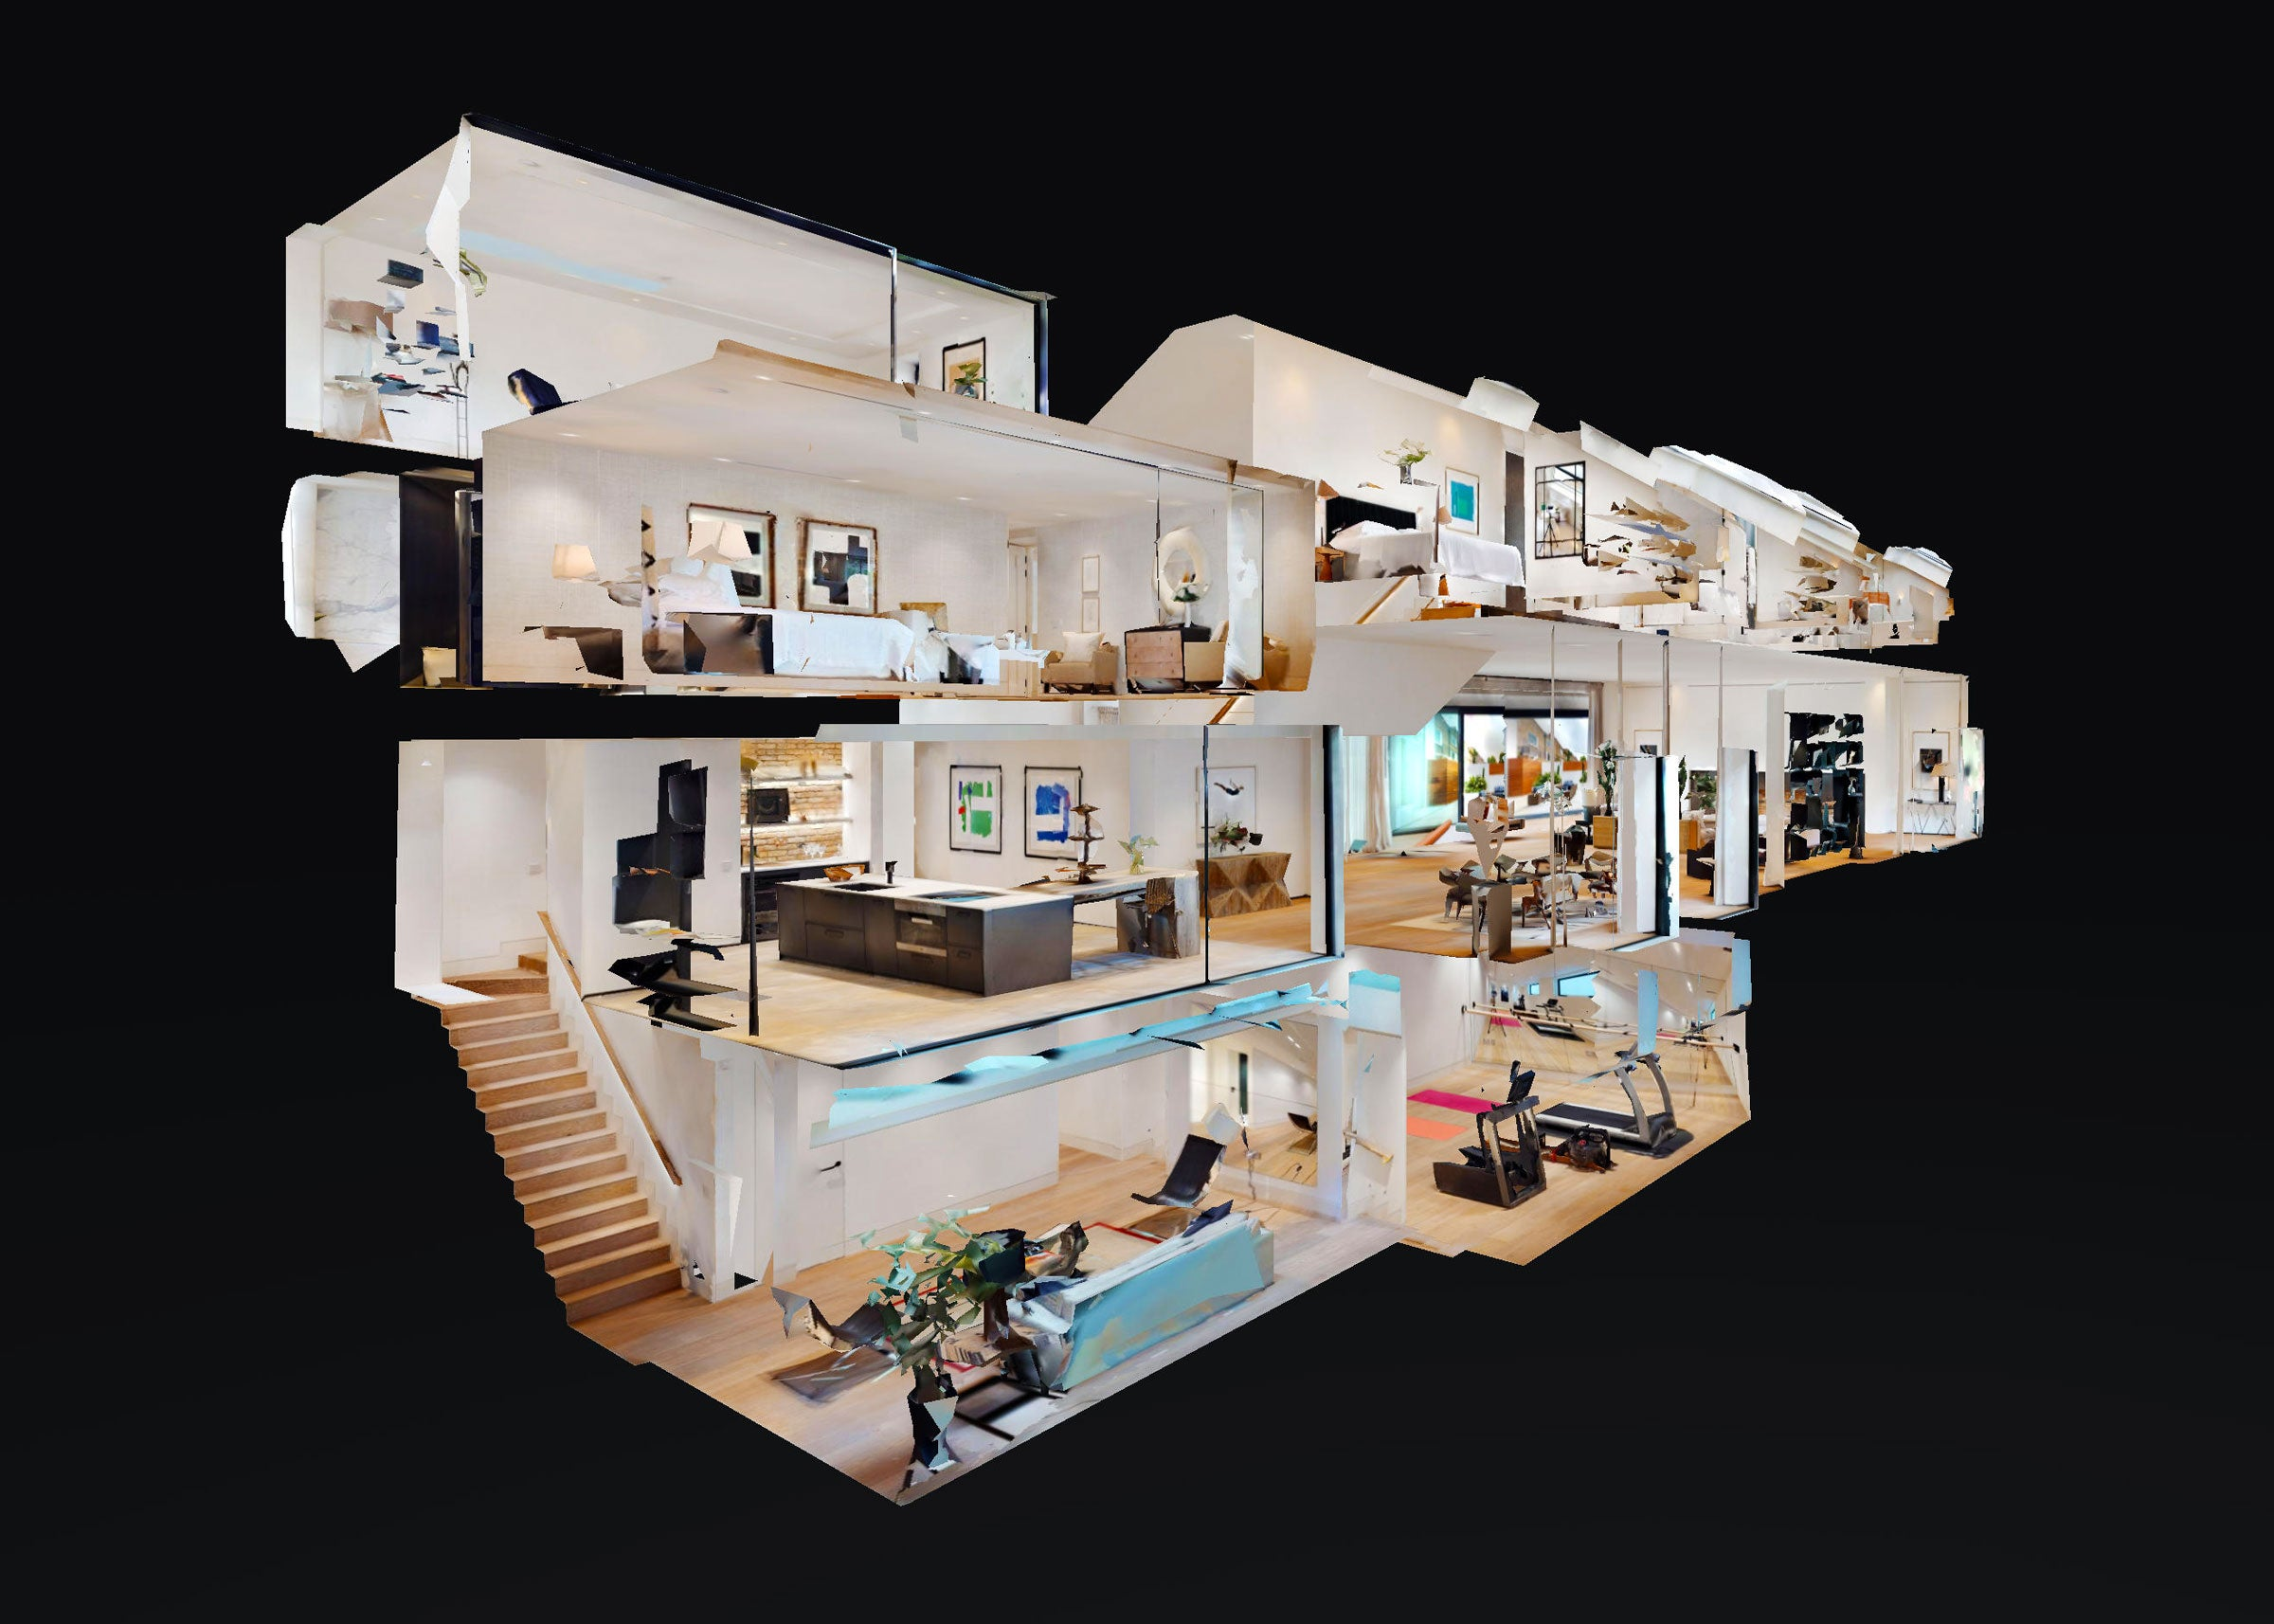 Why Matterport Is One of My Favorite New Growth Stocks